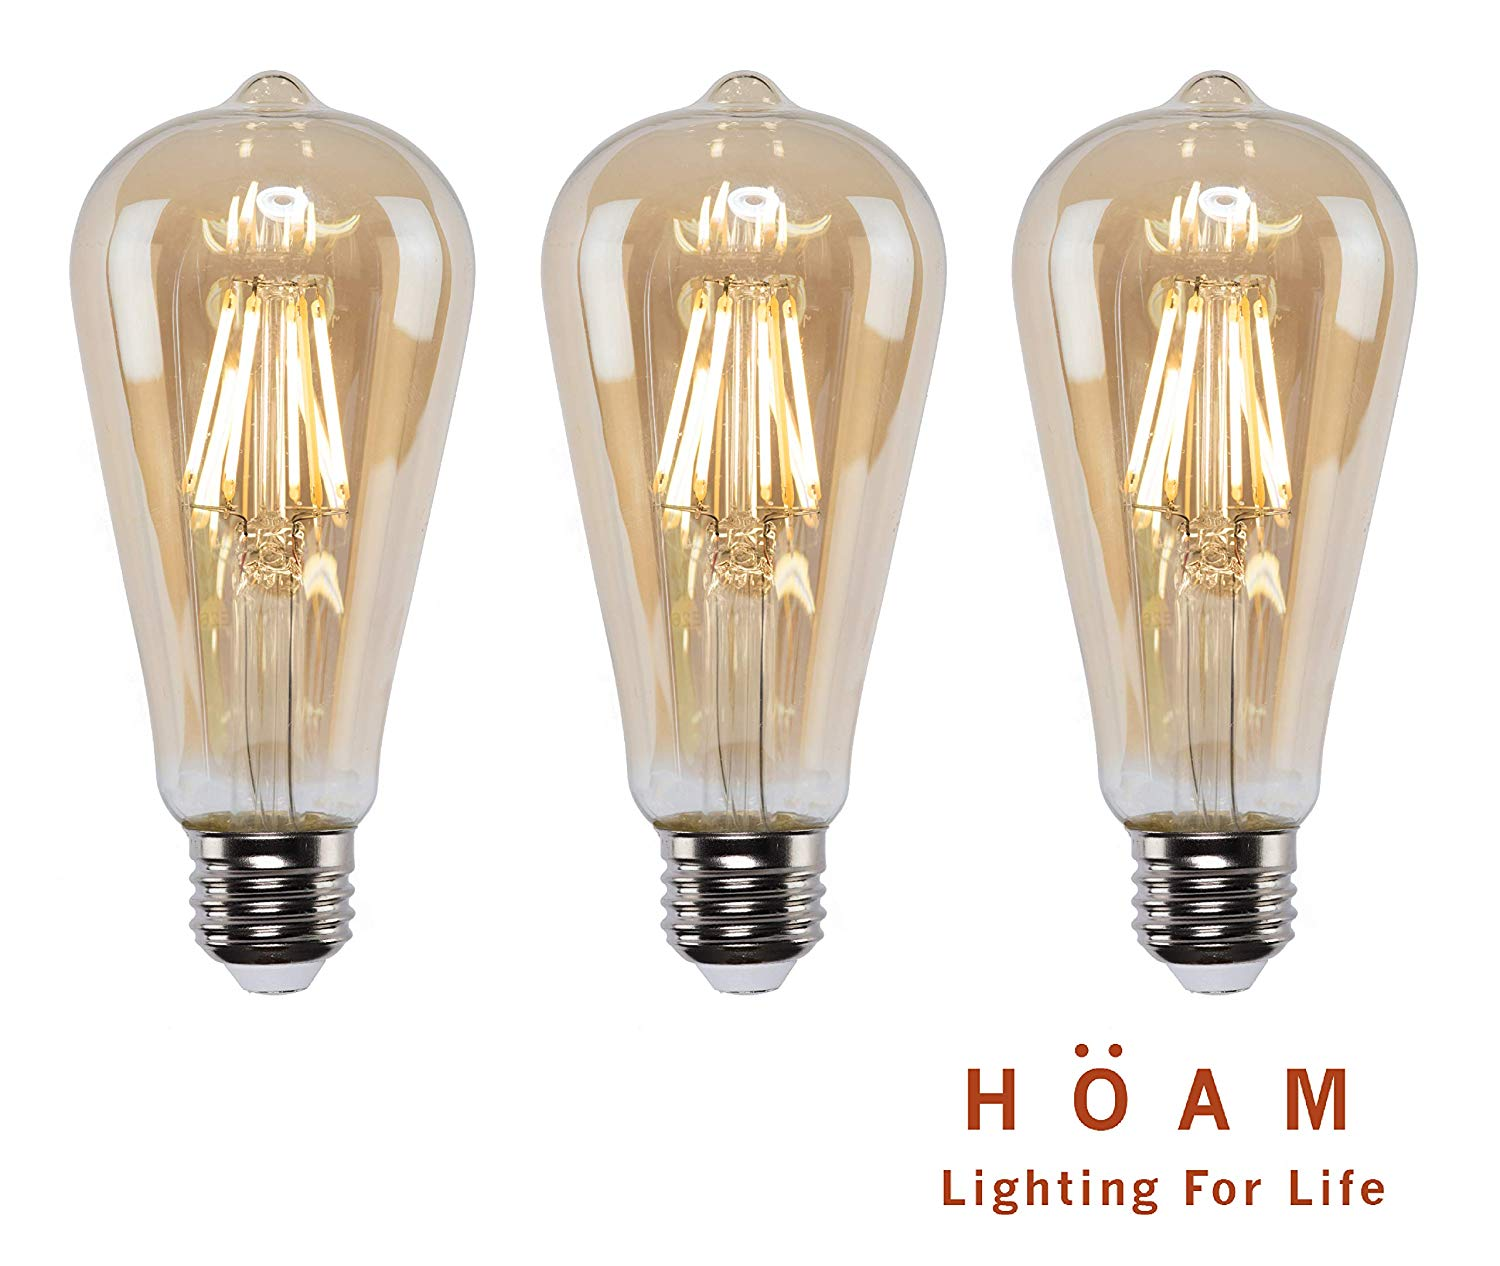 3 Pack Edison Bulbs from HOAM Lighting, Dimmable LED Filament, Antique Style, 4W LED 40W Incandescent Equivalent 4000K Warm Amber Color Temperature, ST18 ST64, E26 E27 Screw Cap, 120V